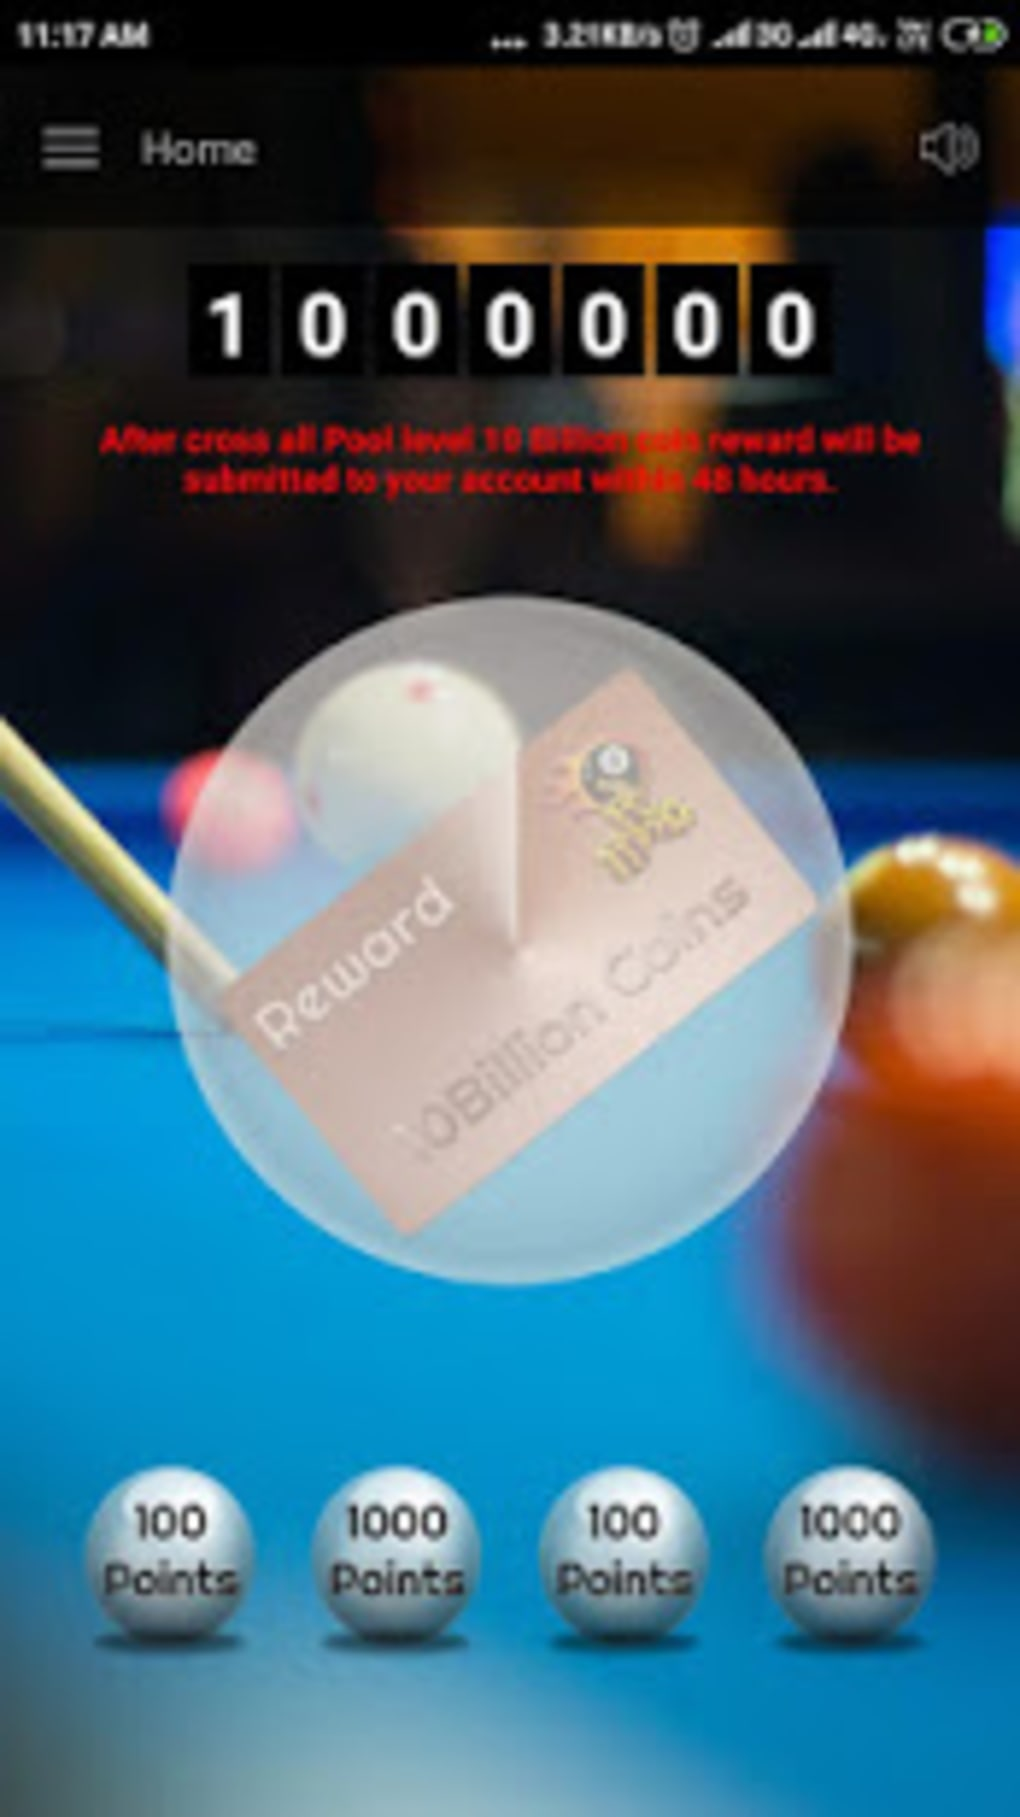 Pool 10billion Coin Reward for Android - Download